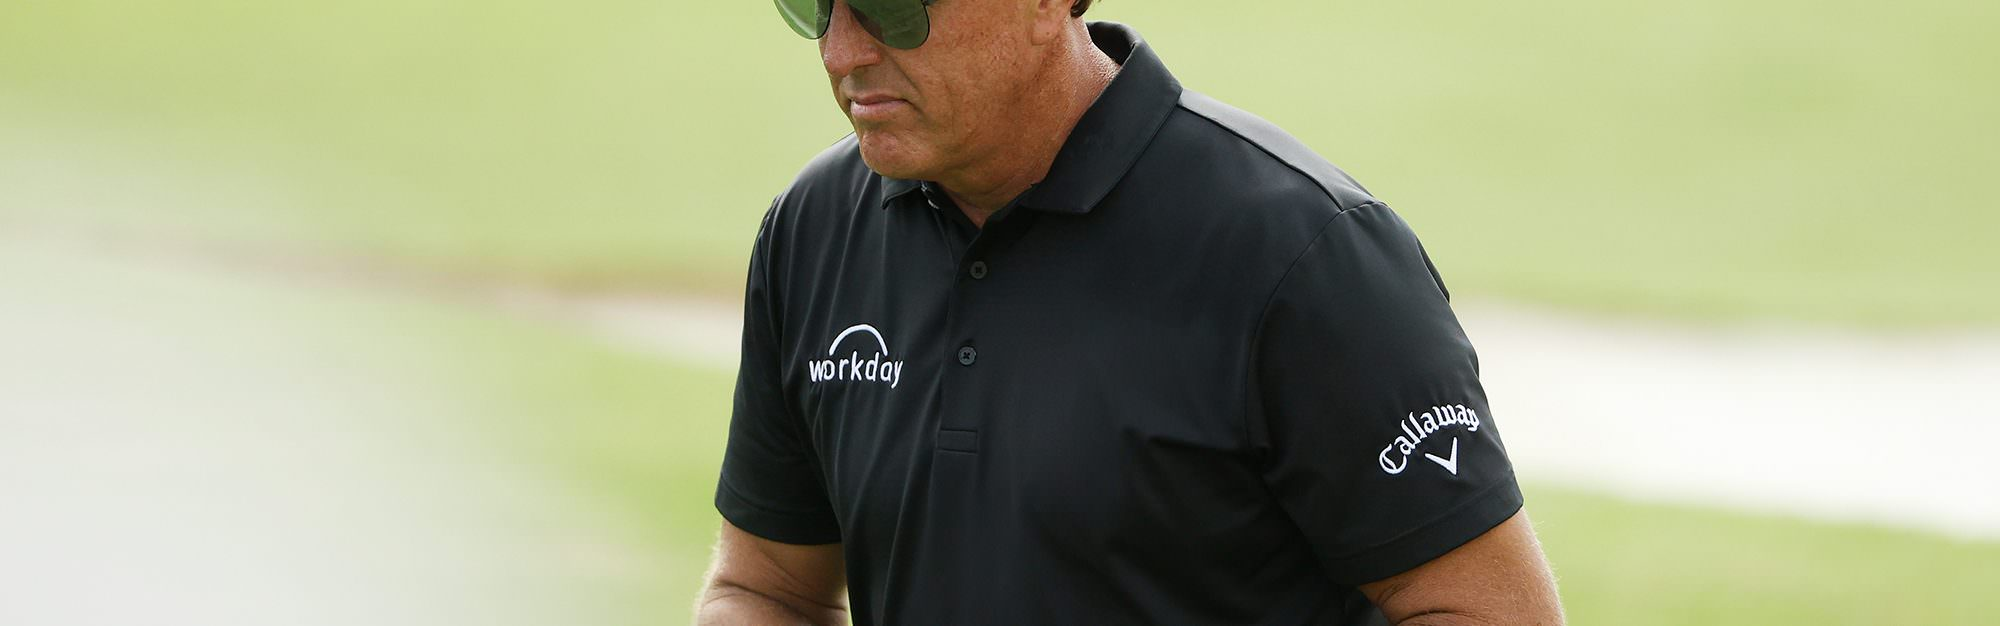 Top golf gambling stories by Phil Mickelson